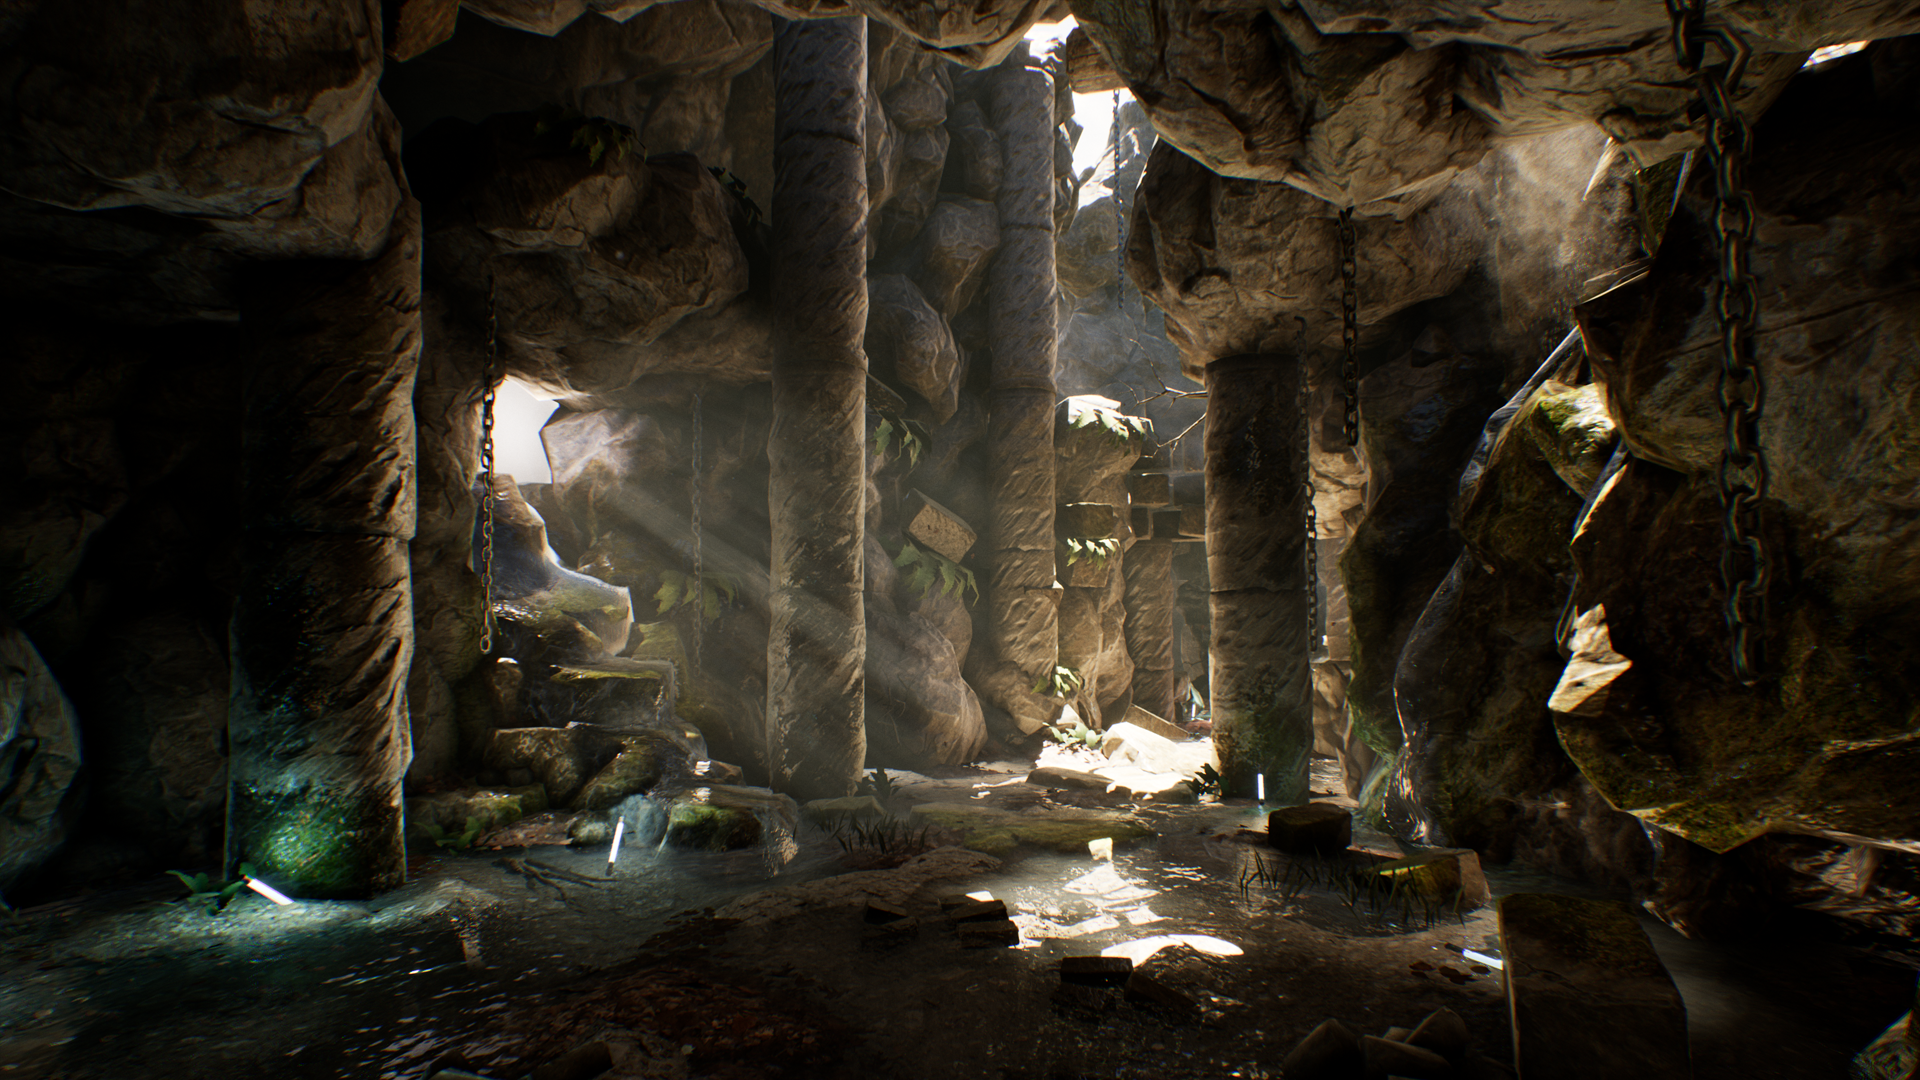 Epic Games Unreal Engine 4 2 Free Scene Assets For Mobile